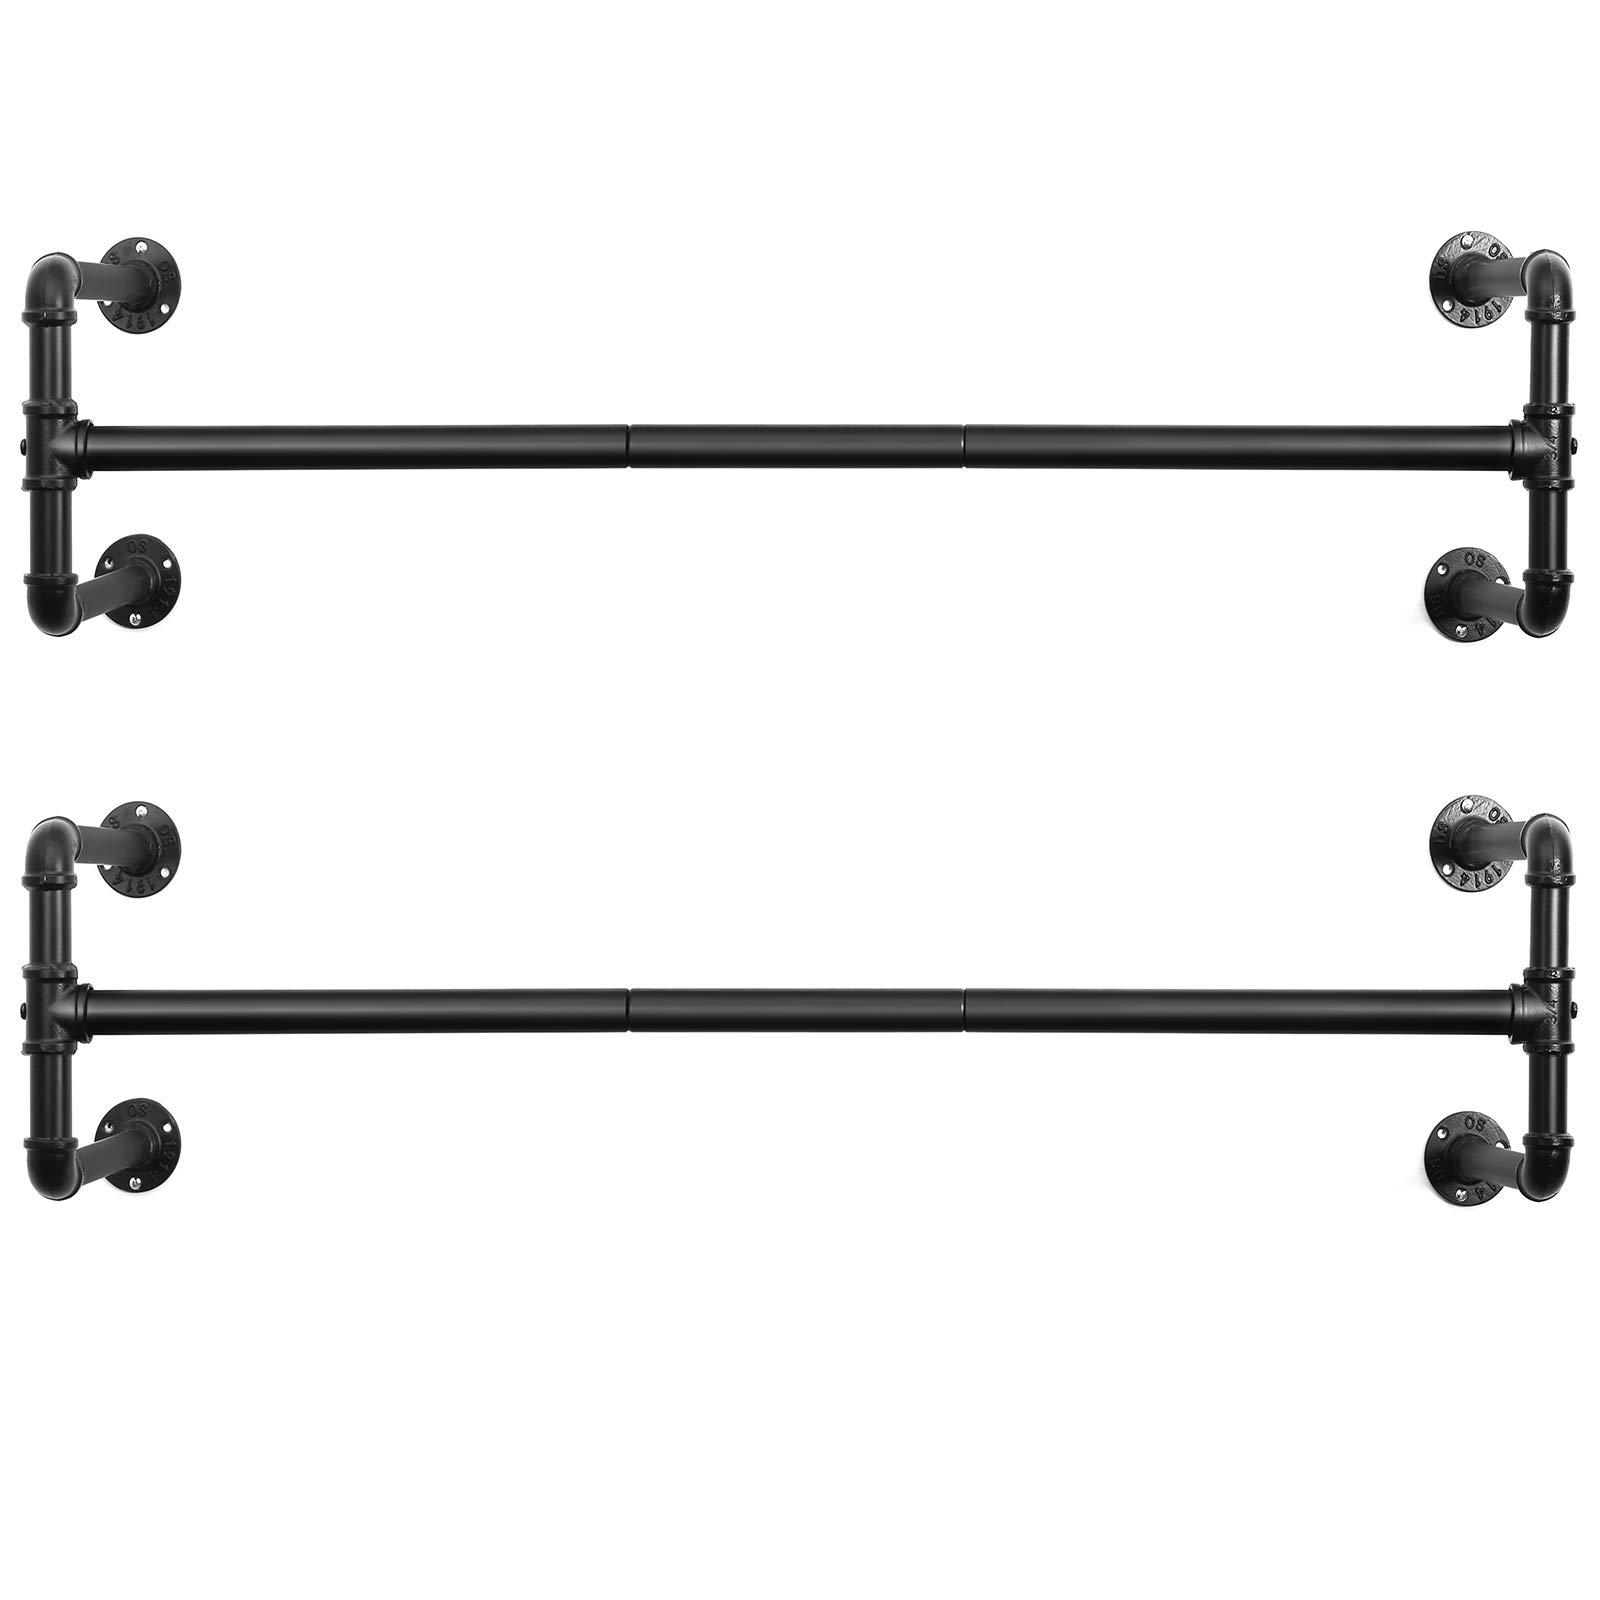 SONGMICS Wall-Mounted Clothes Rack, Set of 2, Industrial Pipe Clothes Hanging Bar, Space-Saving, 43.3 x 11.8 x 11.5 Inches, Holds up to 132 lb, Easy Assembly, for Small Space, Black UHSR64BK-02